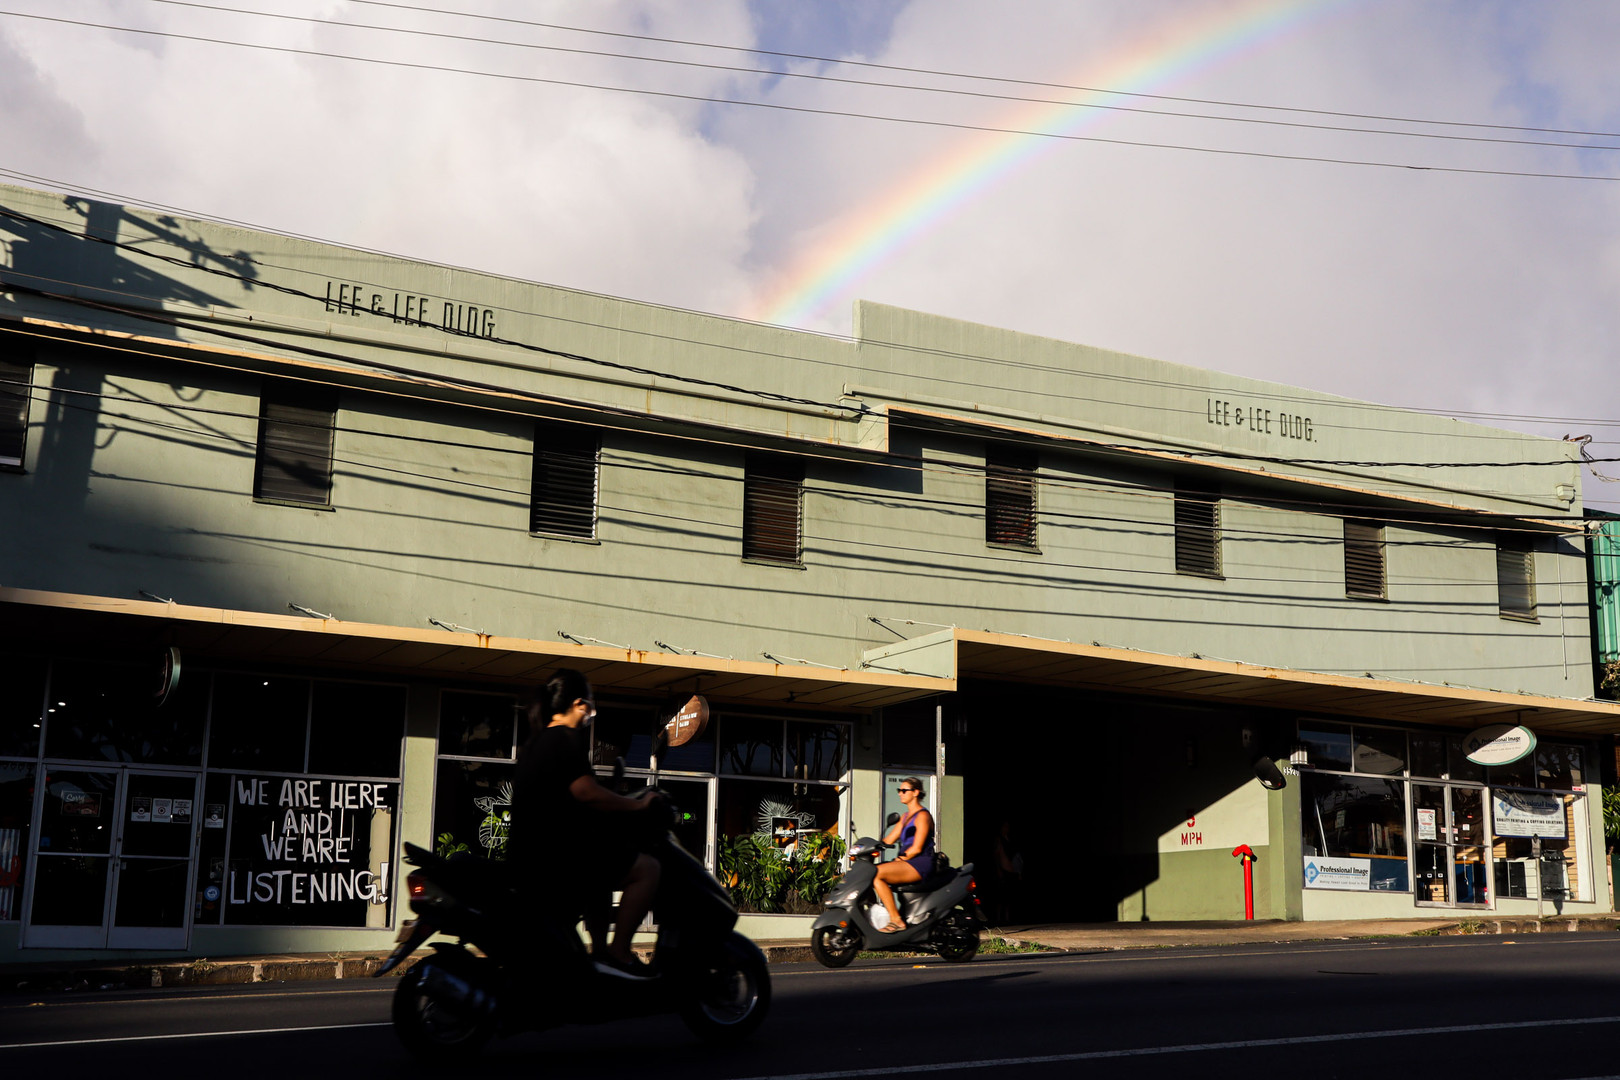 A sign is displayed over the entrance of The Black Cat Salon + Spa at Waialae Ave on September 27, 2020. Kaimuki neighborhood is one of the most well known place in town for it's reputation over small businesses.